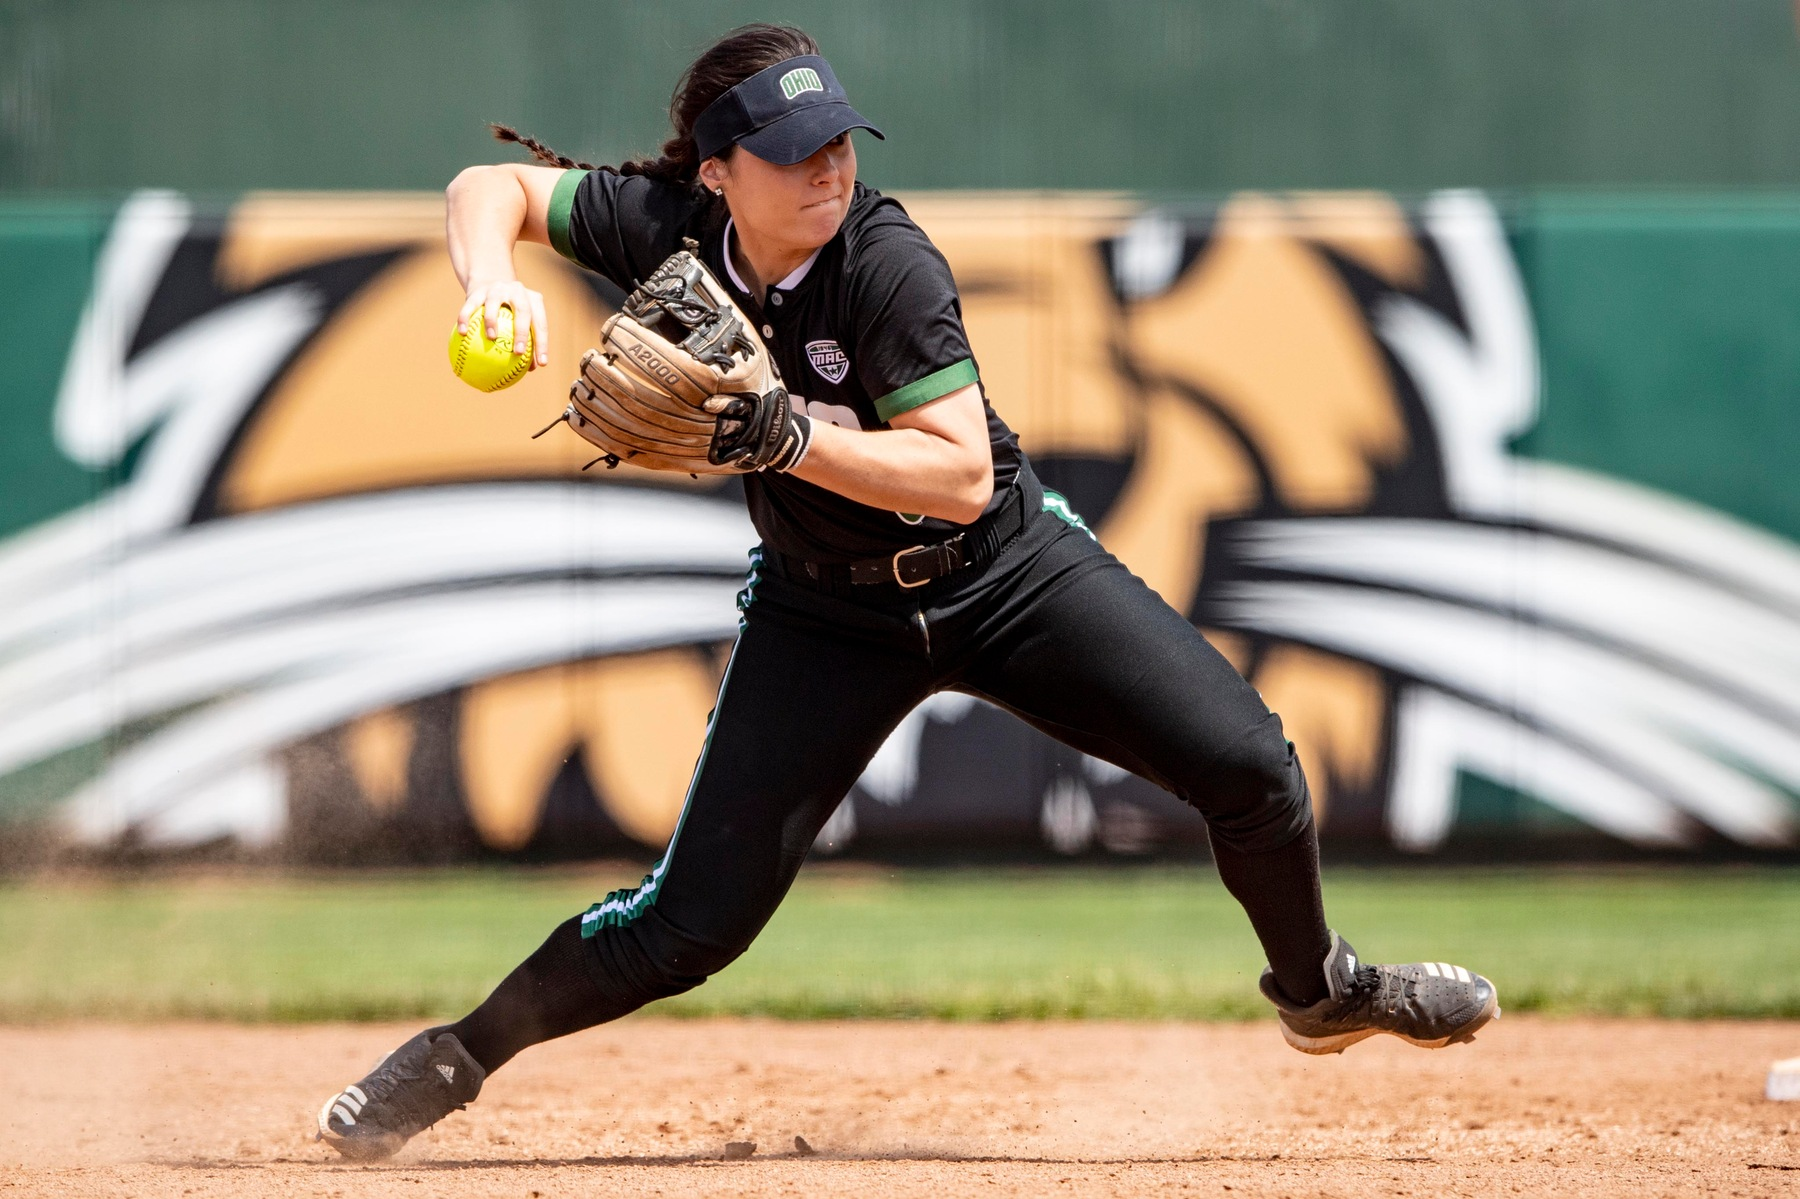 Ohio Softball Wraps up Regular Season at Buffalo This Weekend